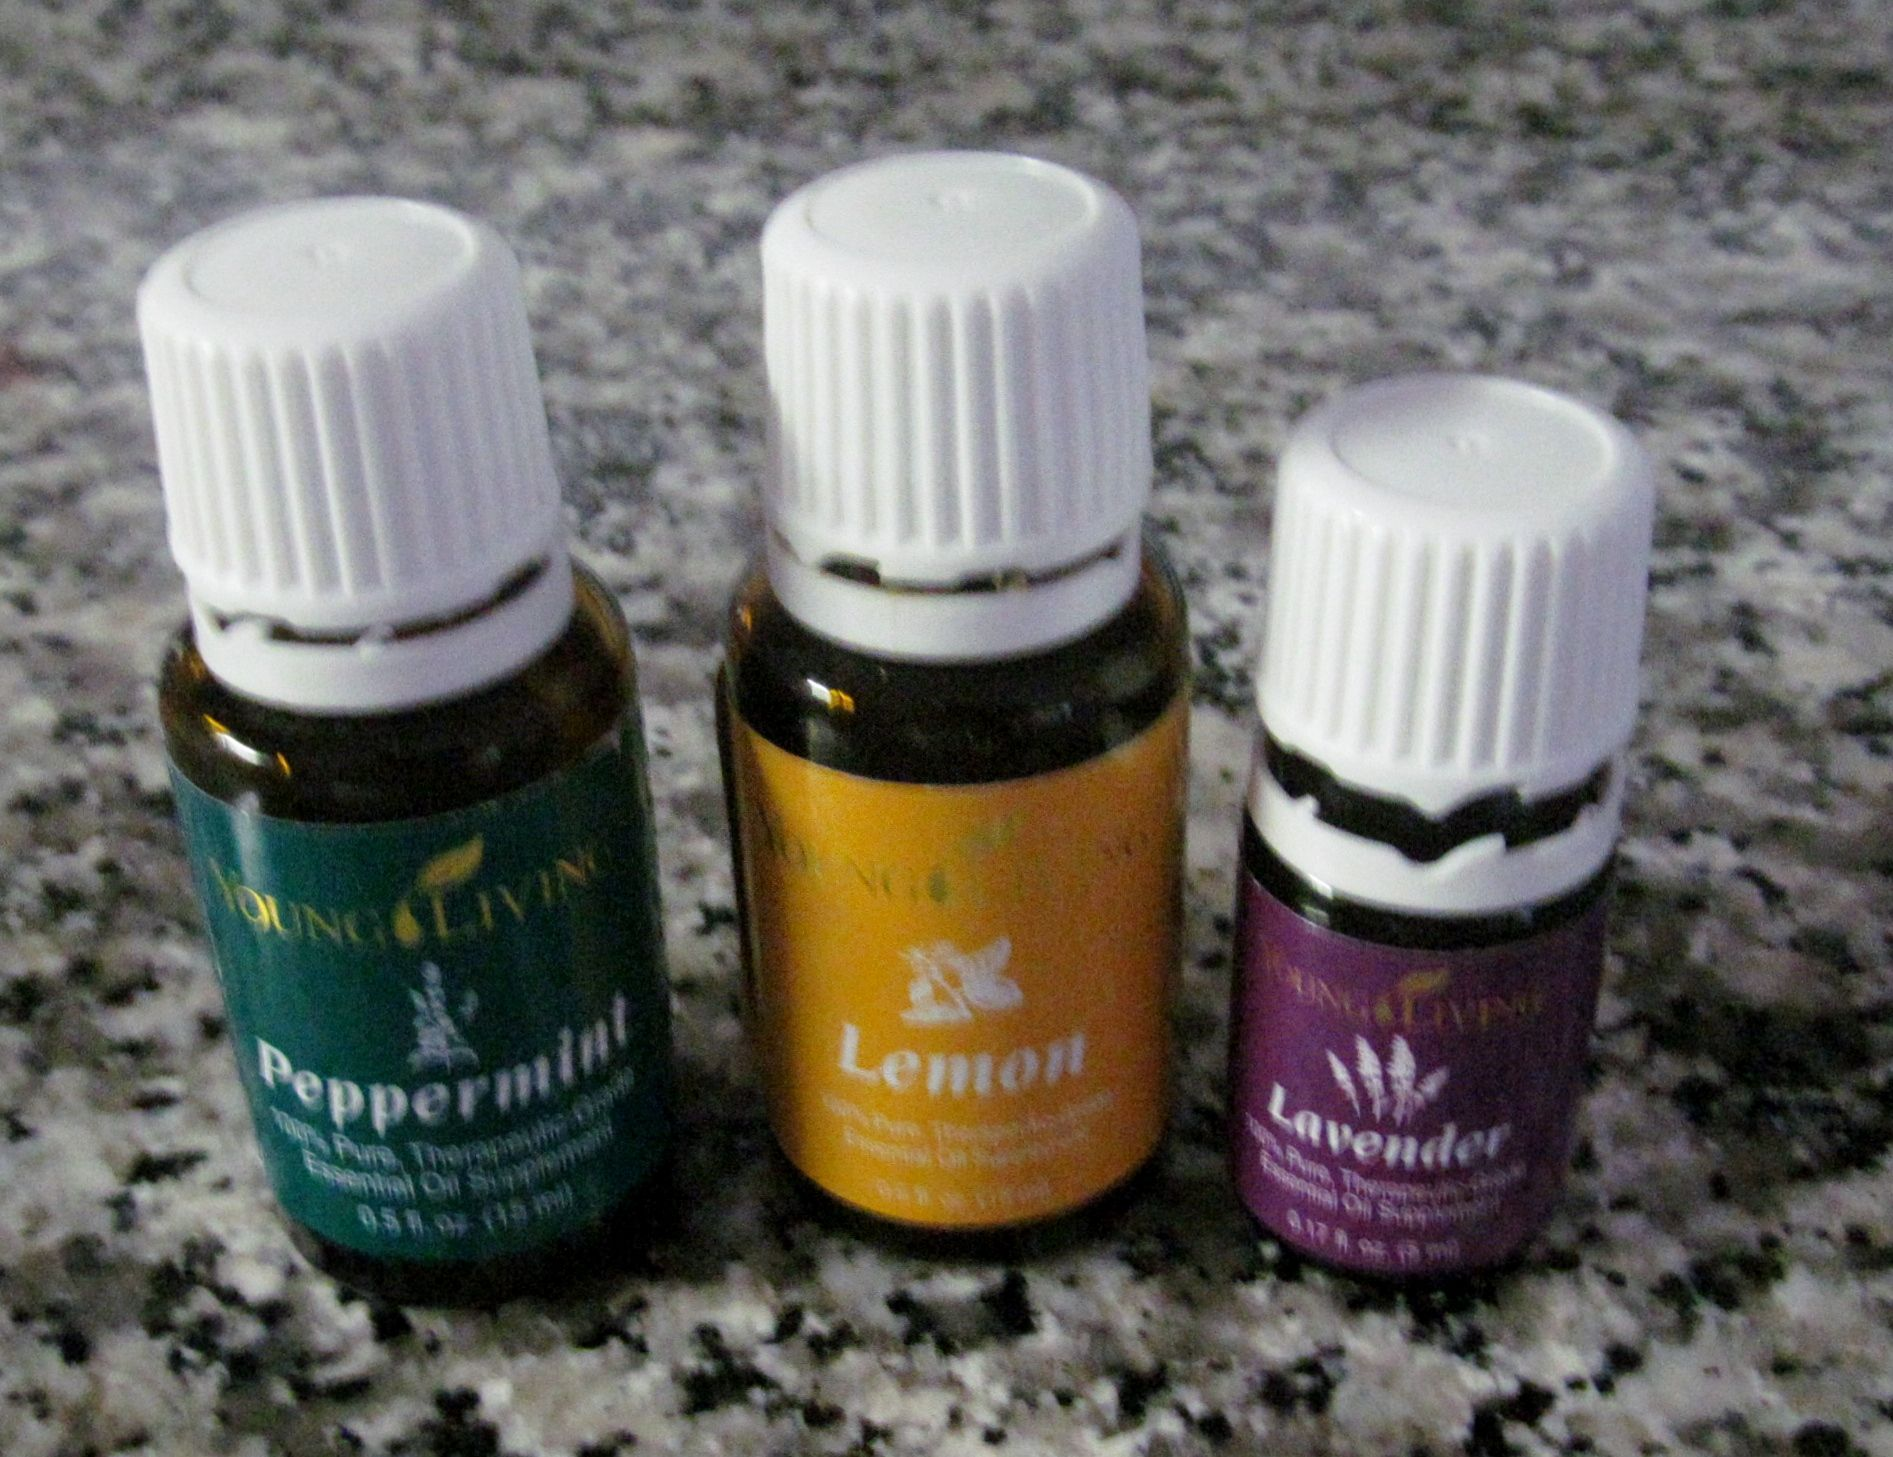 Allergy trio, diffuse one time daily Young living